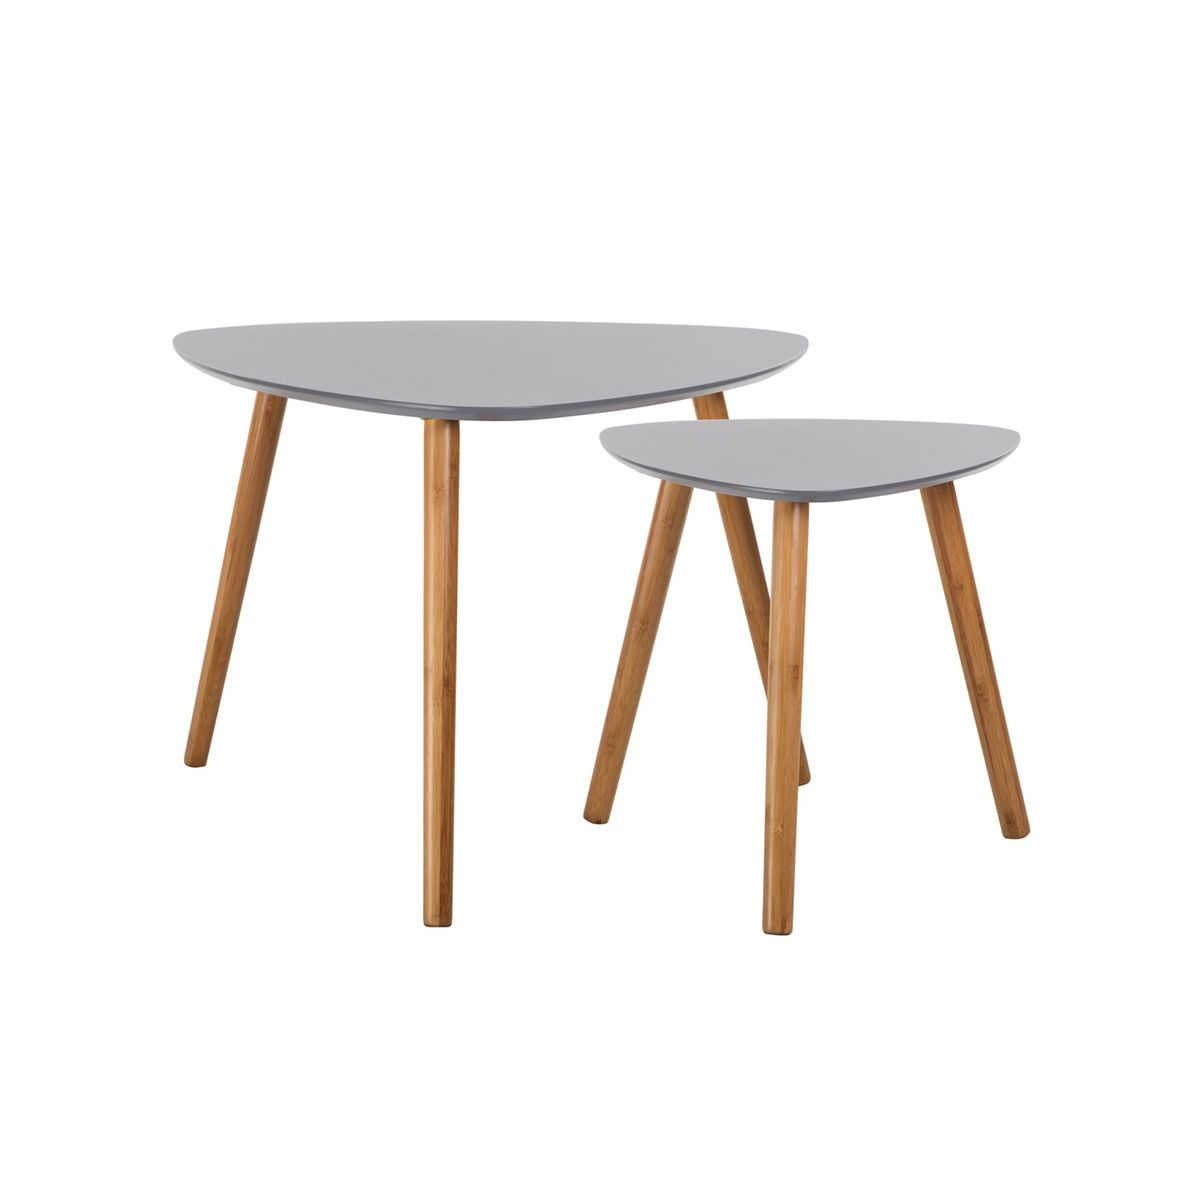 Table Basse Arrondie Table Basse Scandinave 33 Modèles D 39inspiration Nordique